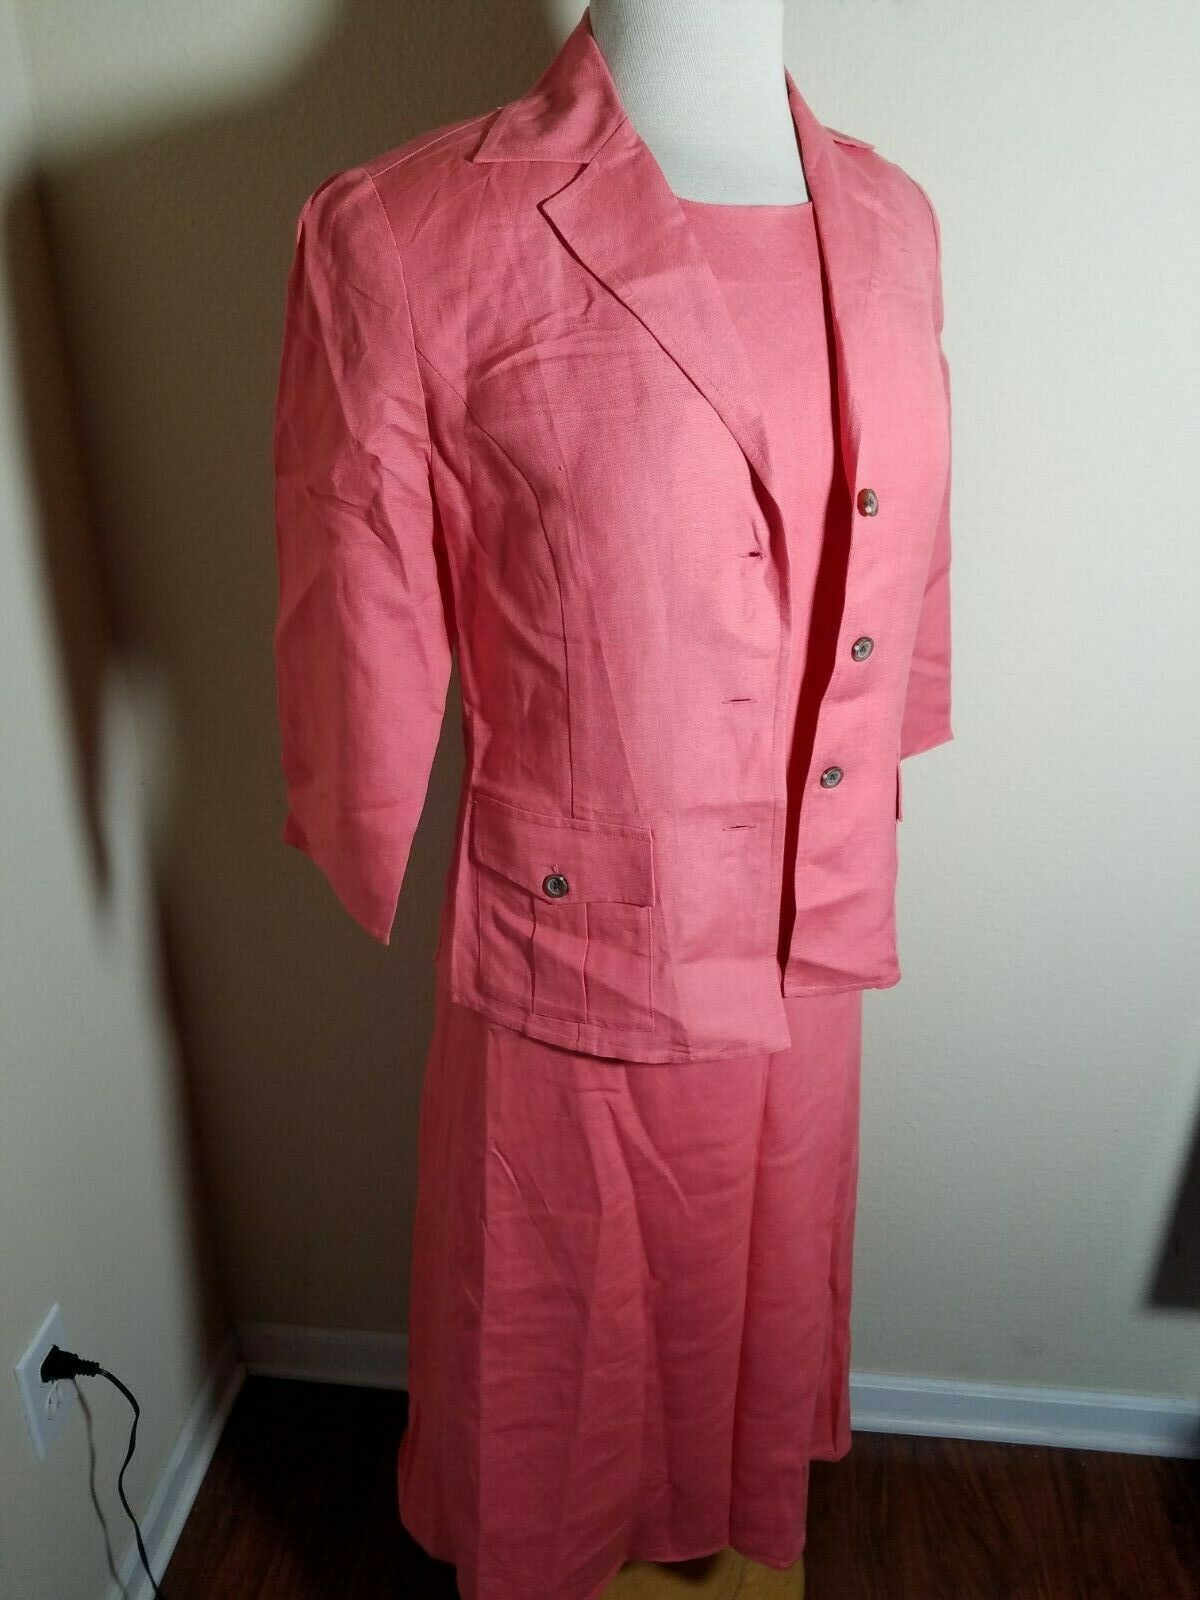 Talbots Petites Women's Dress Set Linen Blend Pink Sleeveless Maxi & Jacket 4 image 6